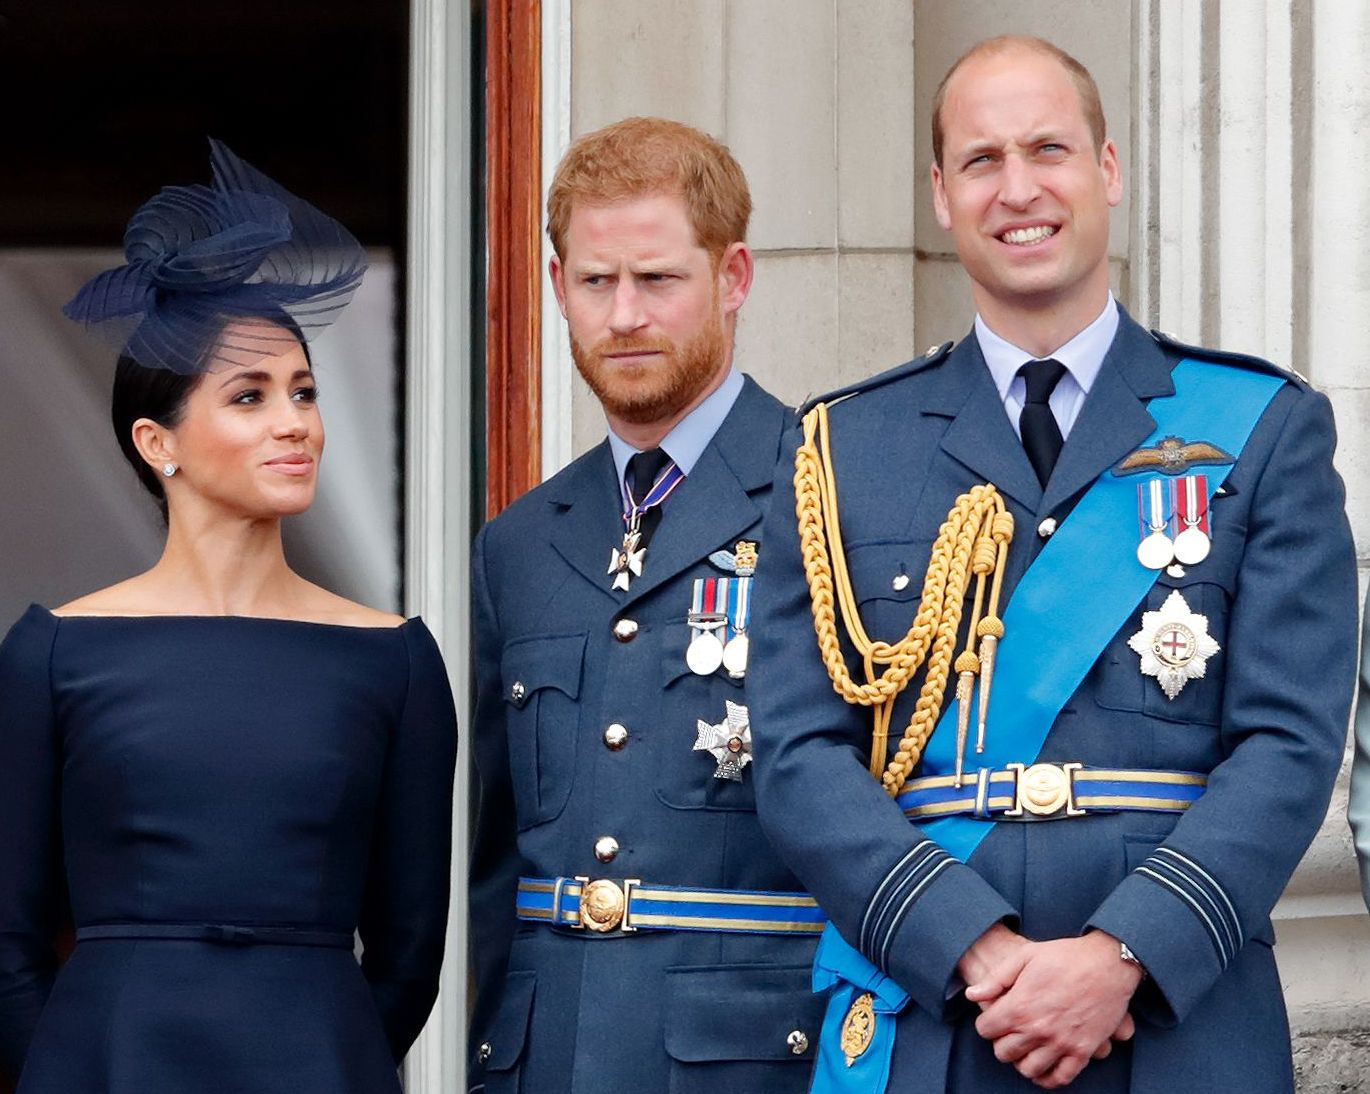 The Real Story Behind That Video of Prince William Ignoring Meghan Markle